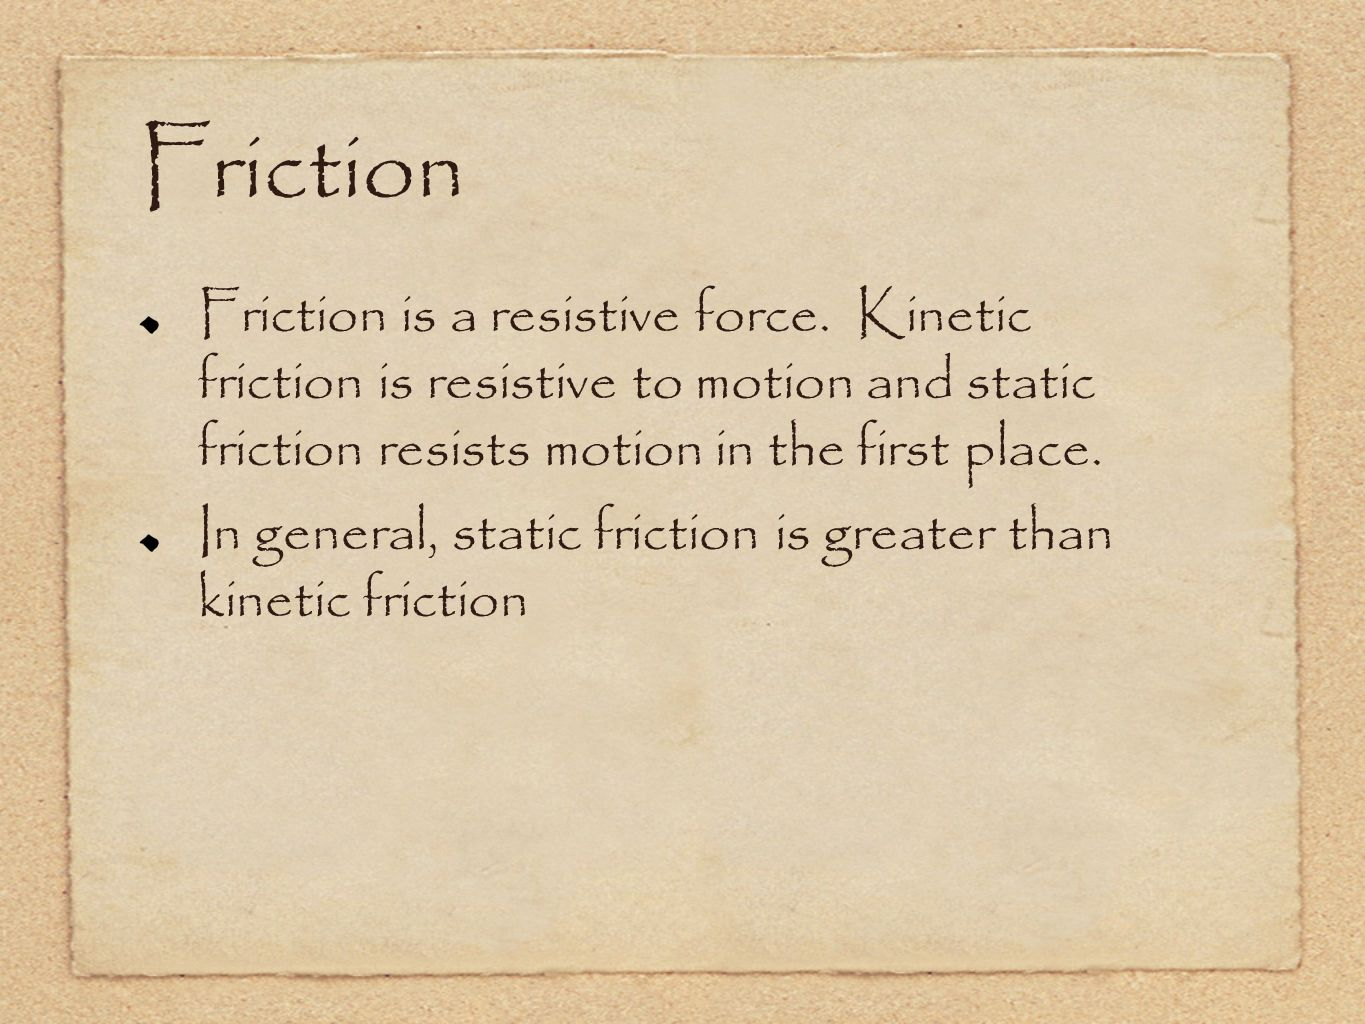 Friction Friction is a resistive force. Kinetic friction is resistive to motion and static friction resists motion in the first place.